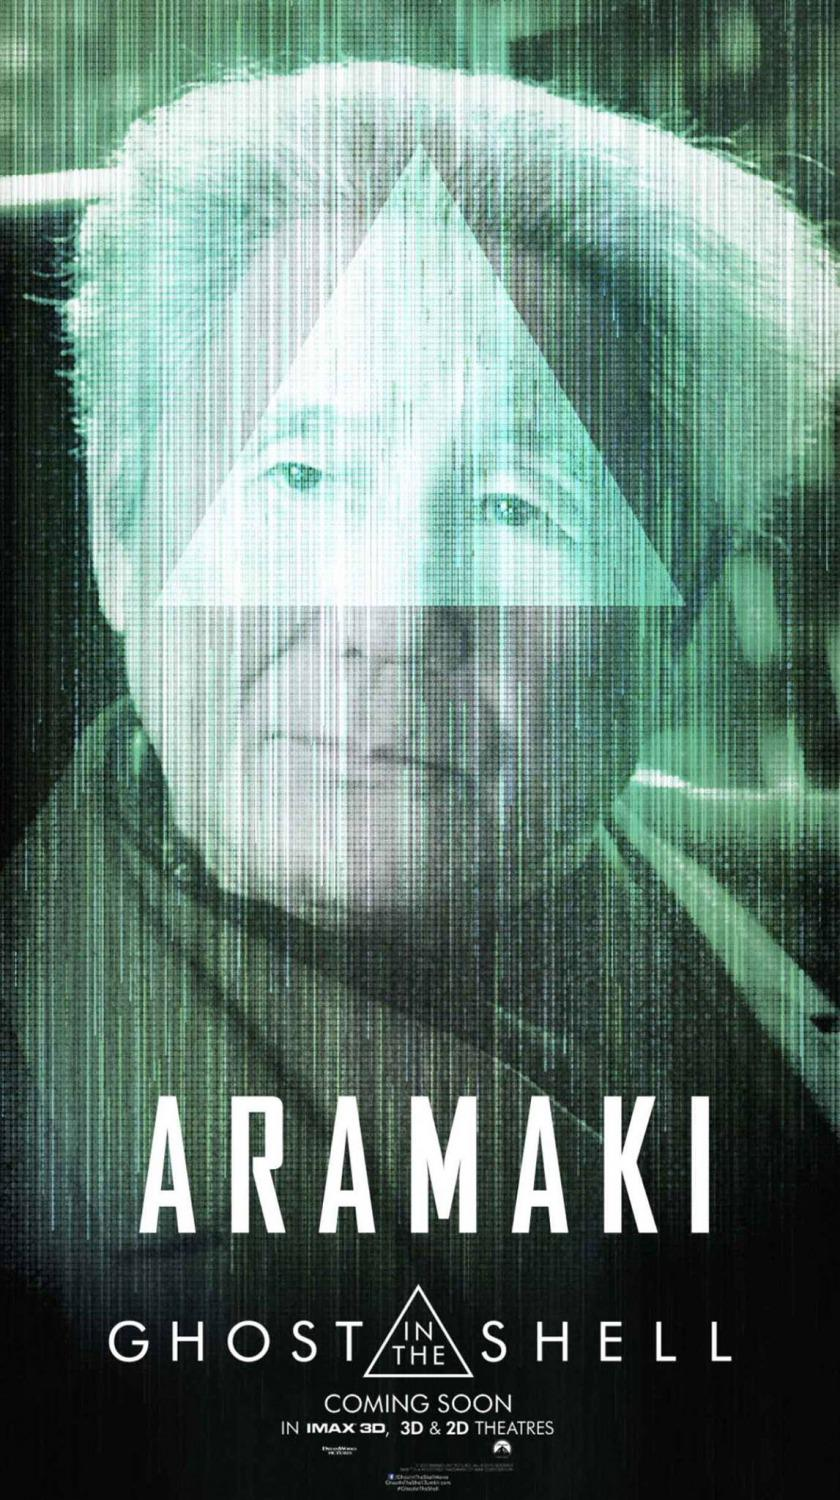 Ghost in the Shell (live action film 2017) poster Aramaki